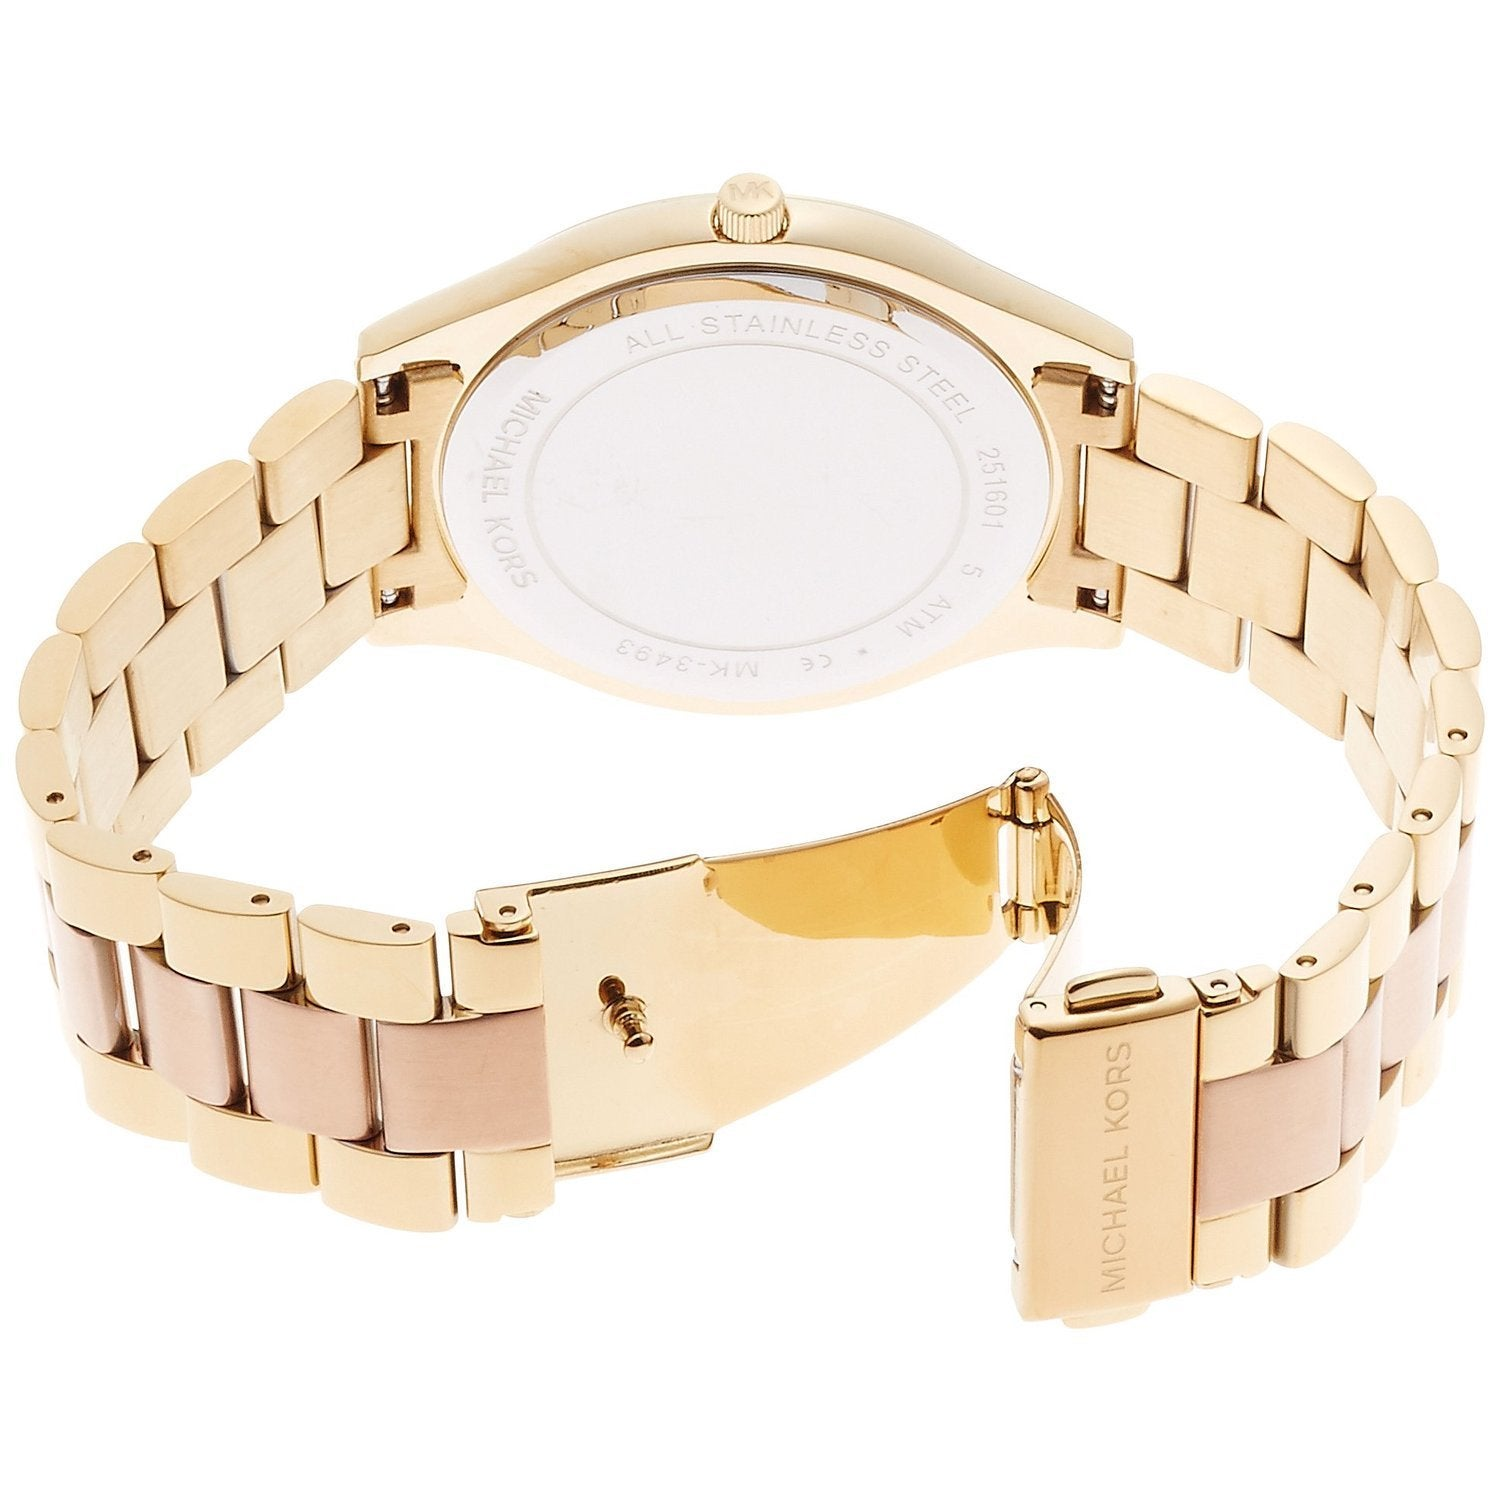 15a4a183704b Shop Michael Kors Women s MK3493 Slim Runway Rose-Tone Dial Two-Tone  Stainless Steel Bracelet Watch - Free Shipping Today - Overstock - 11520018